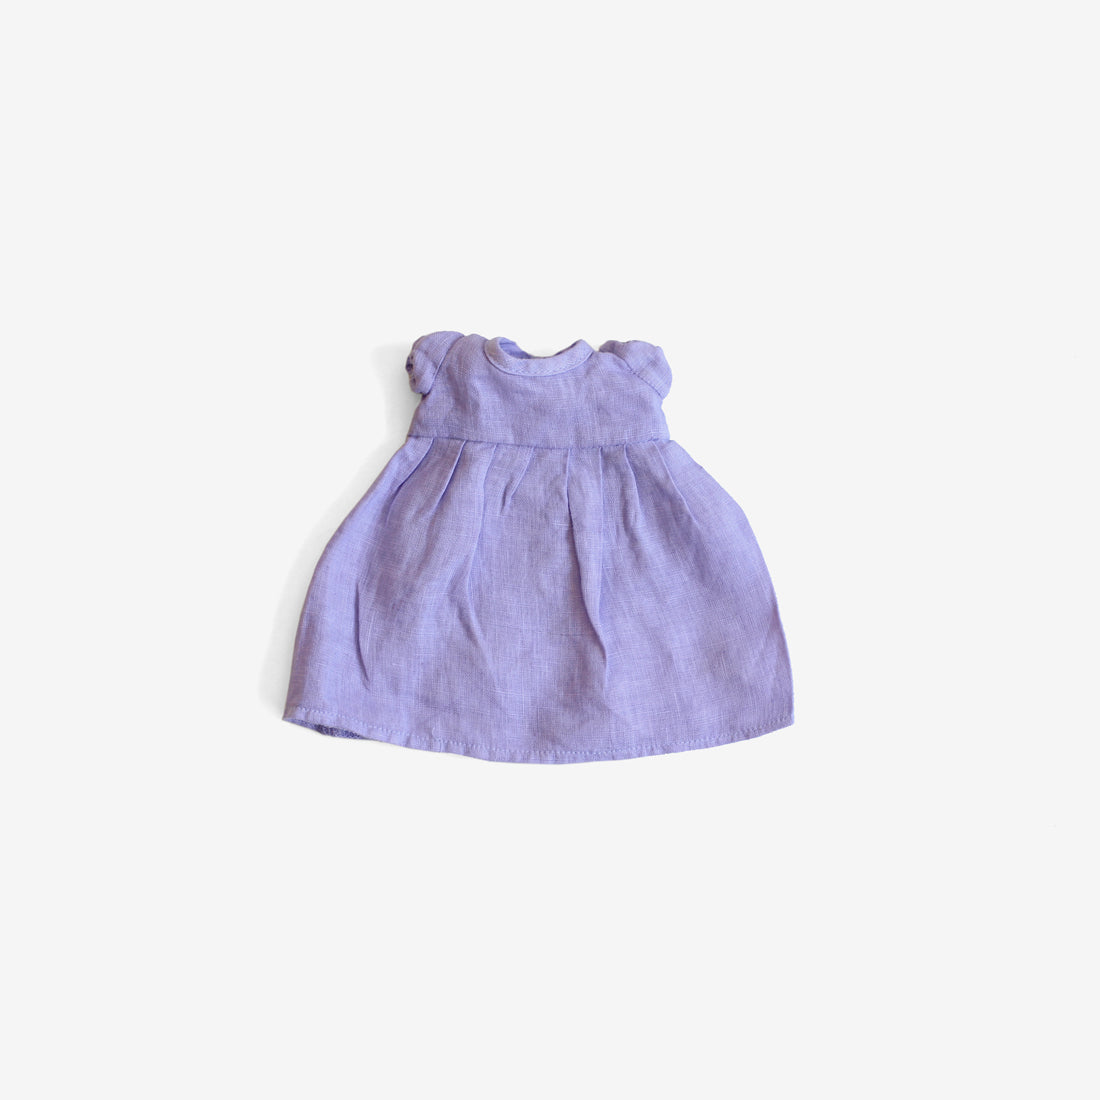 Linen Dolly Dress - Wisteria